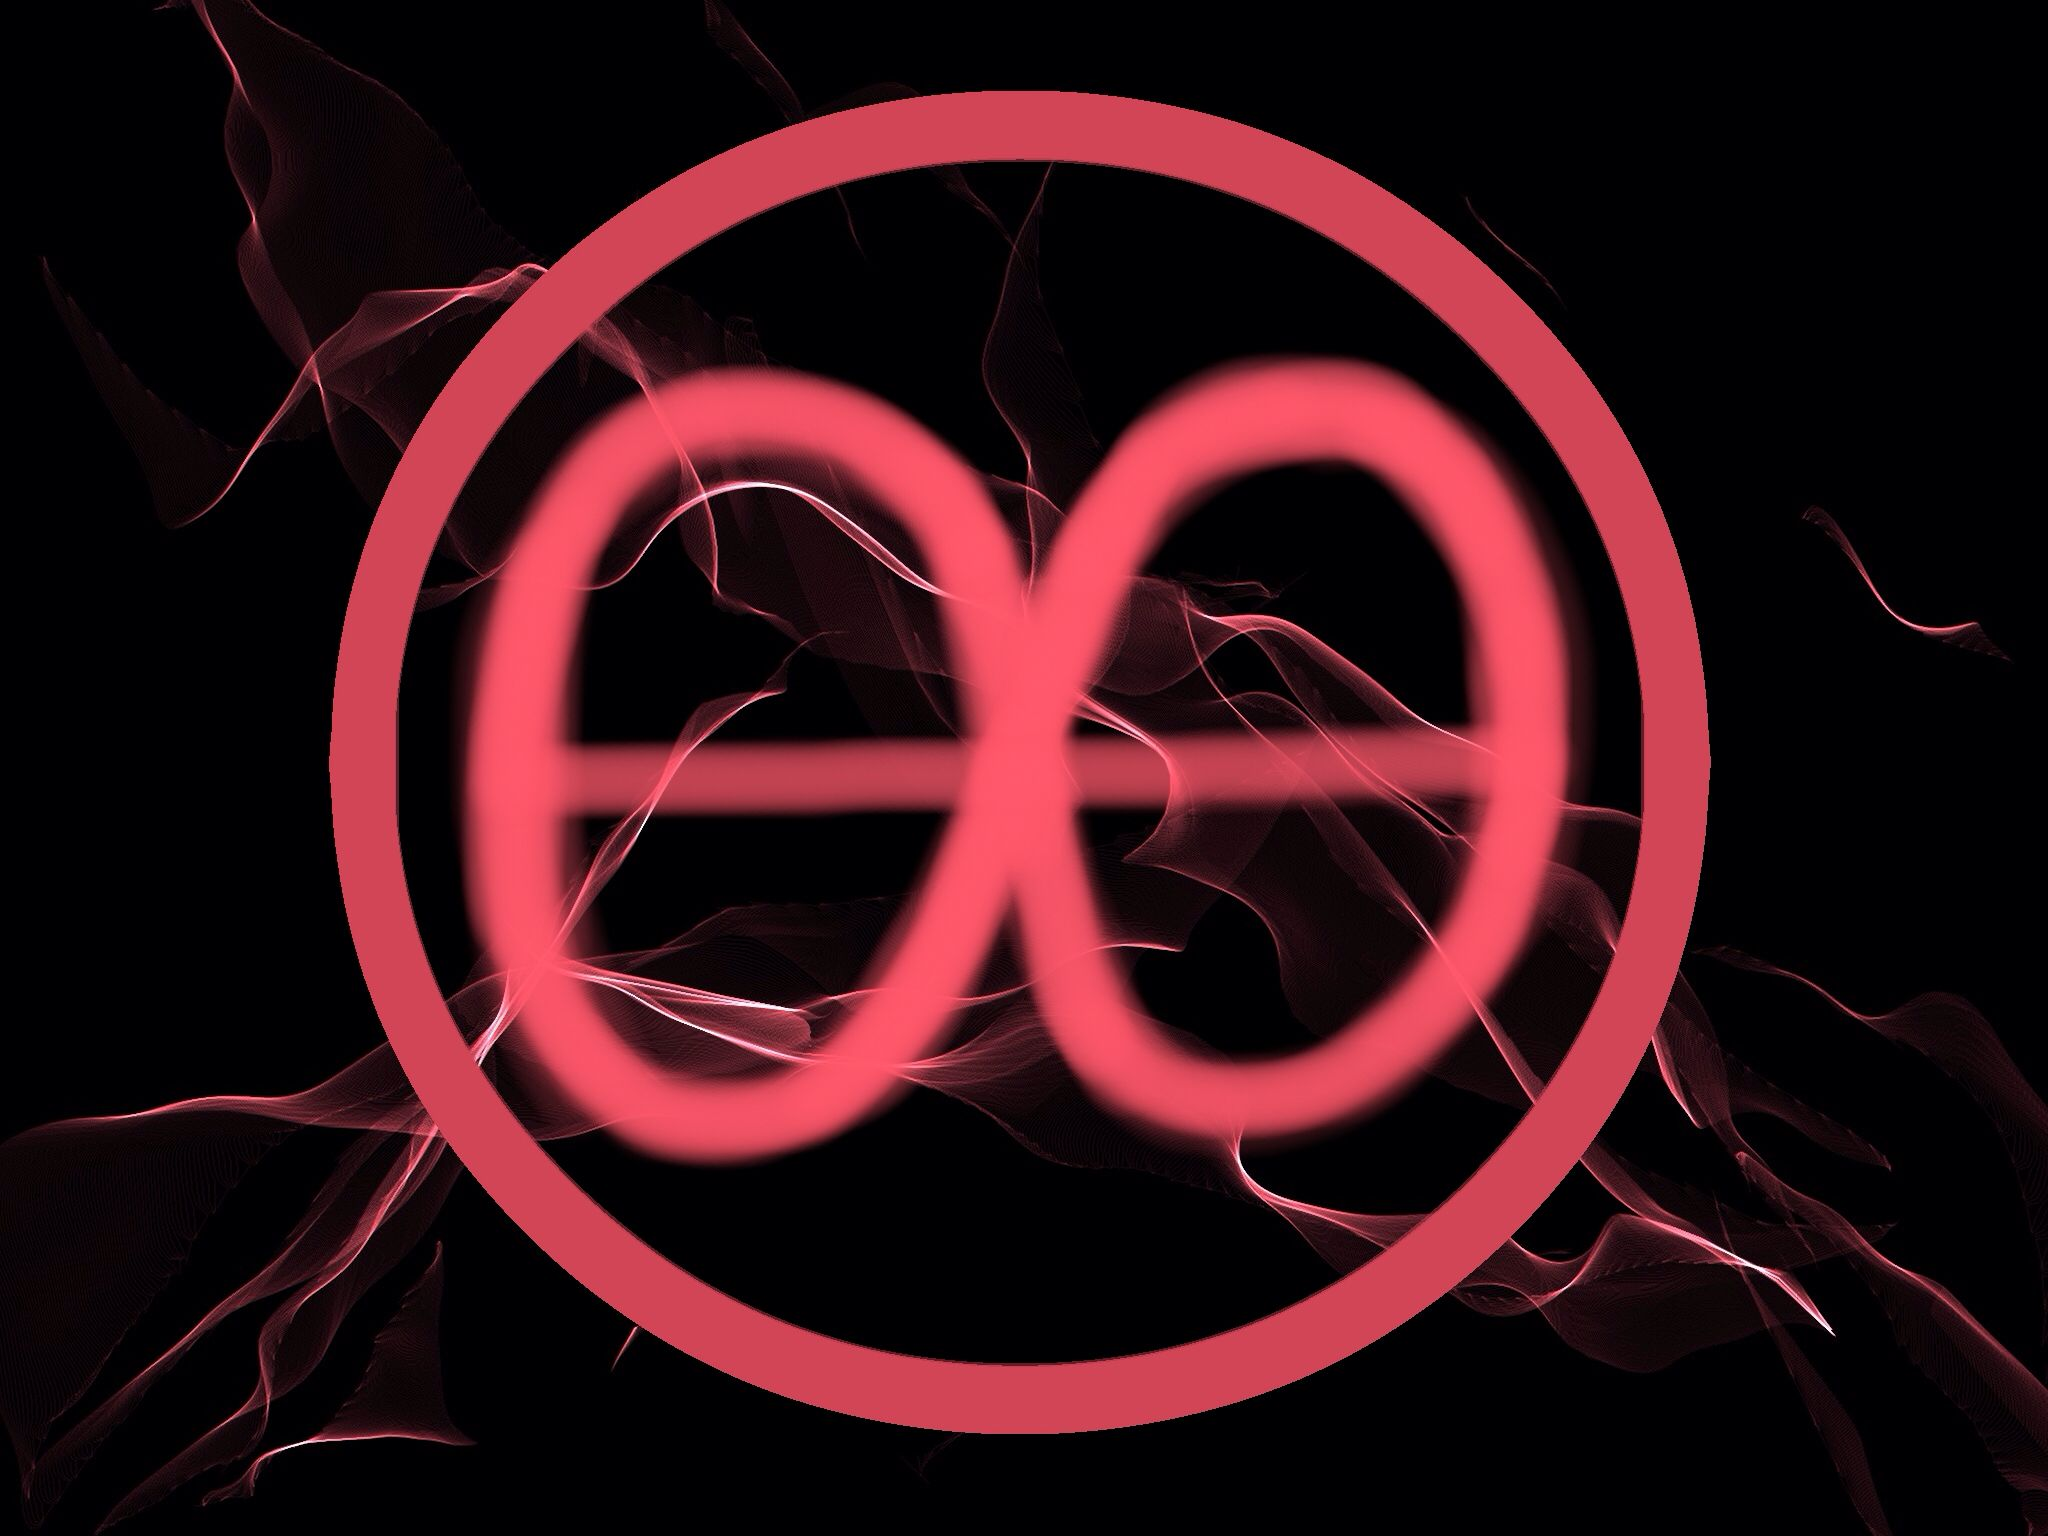 Infinity On Paper Symbol From Unicode Nit Love Anguish Torture